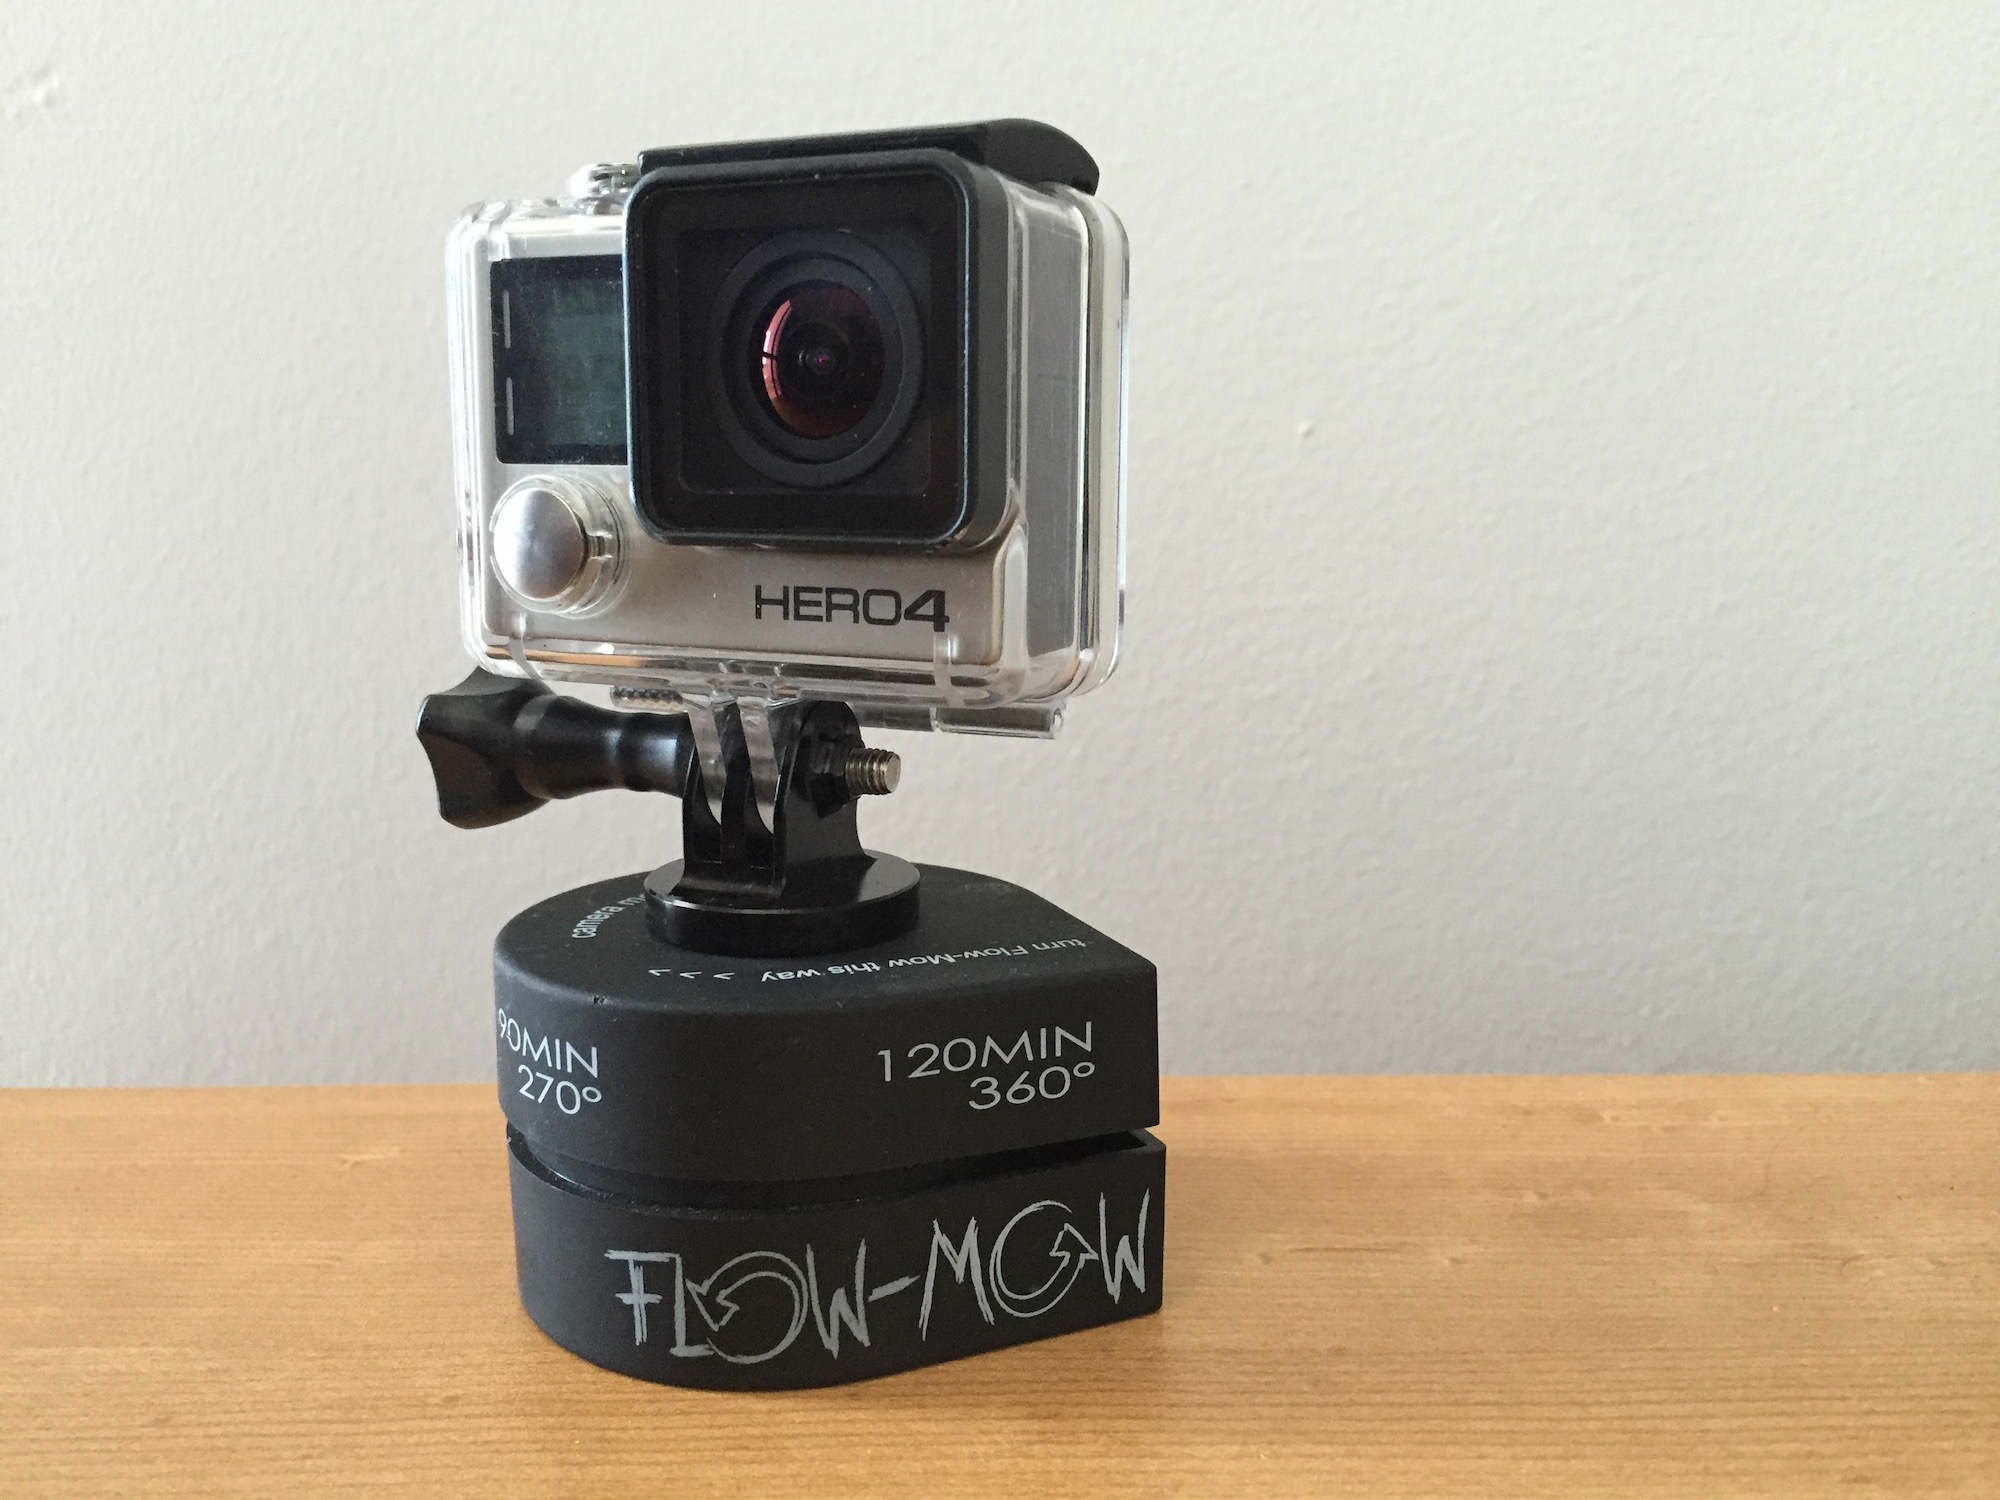 Flow Mow GoPro Time Lapses Mount